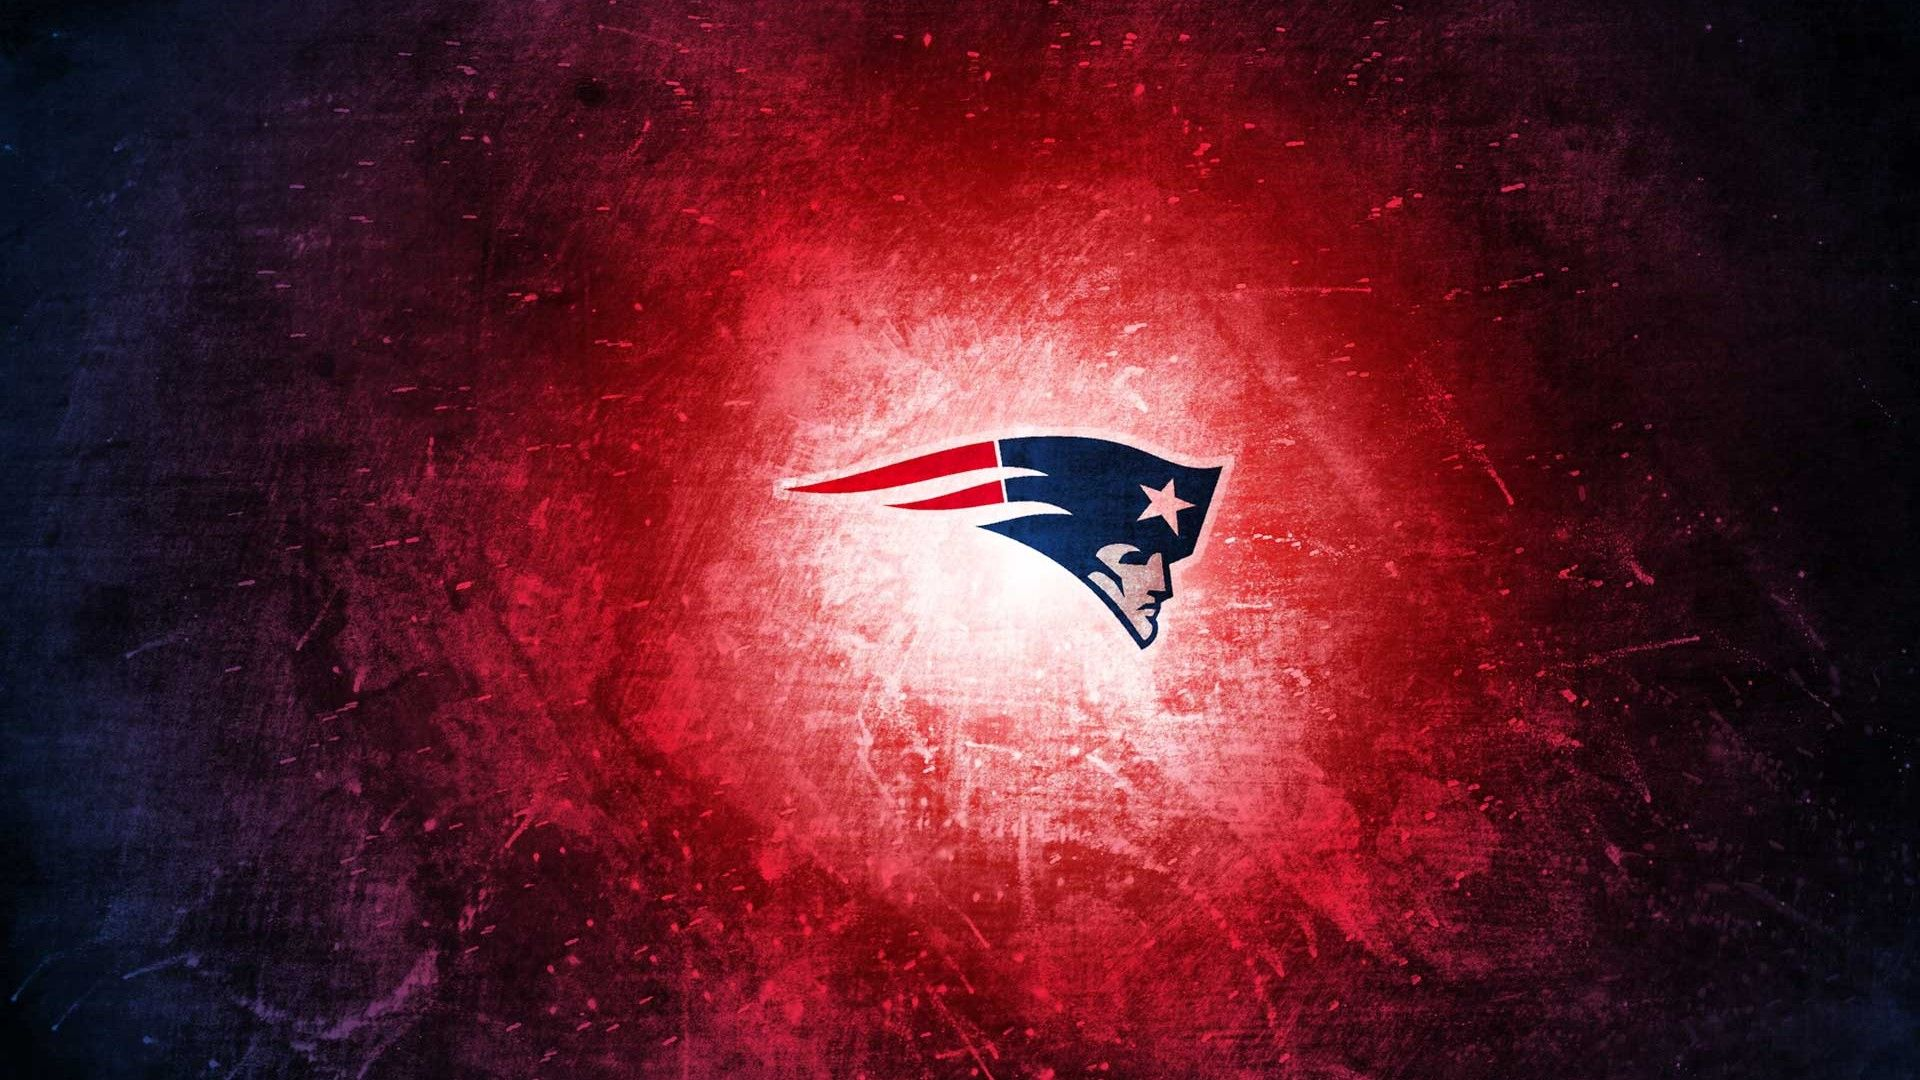 Patriots Wallpaper For Mac Backgrounds New england